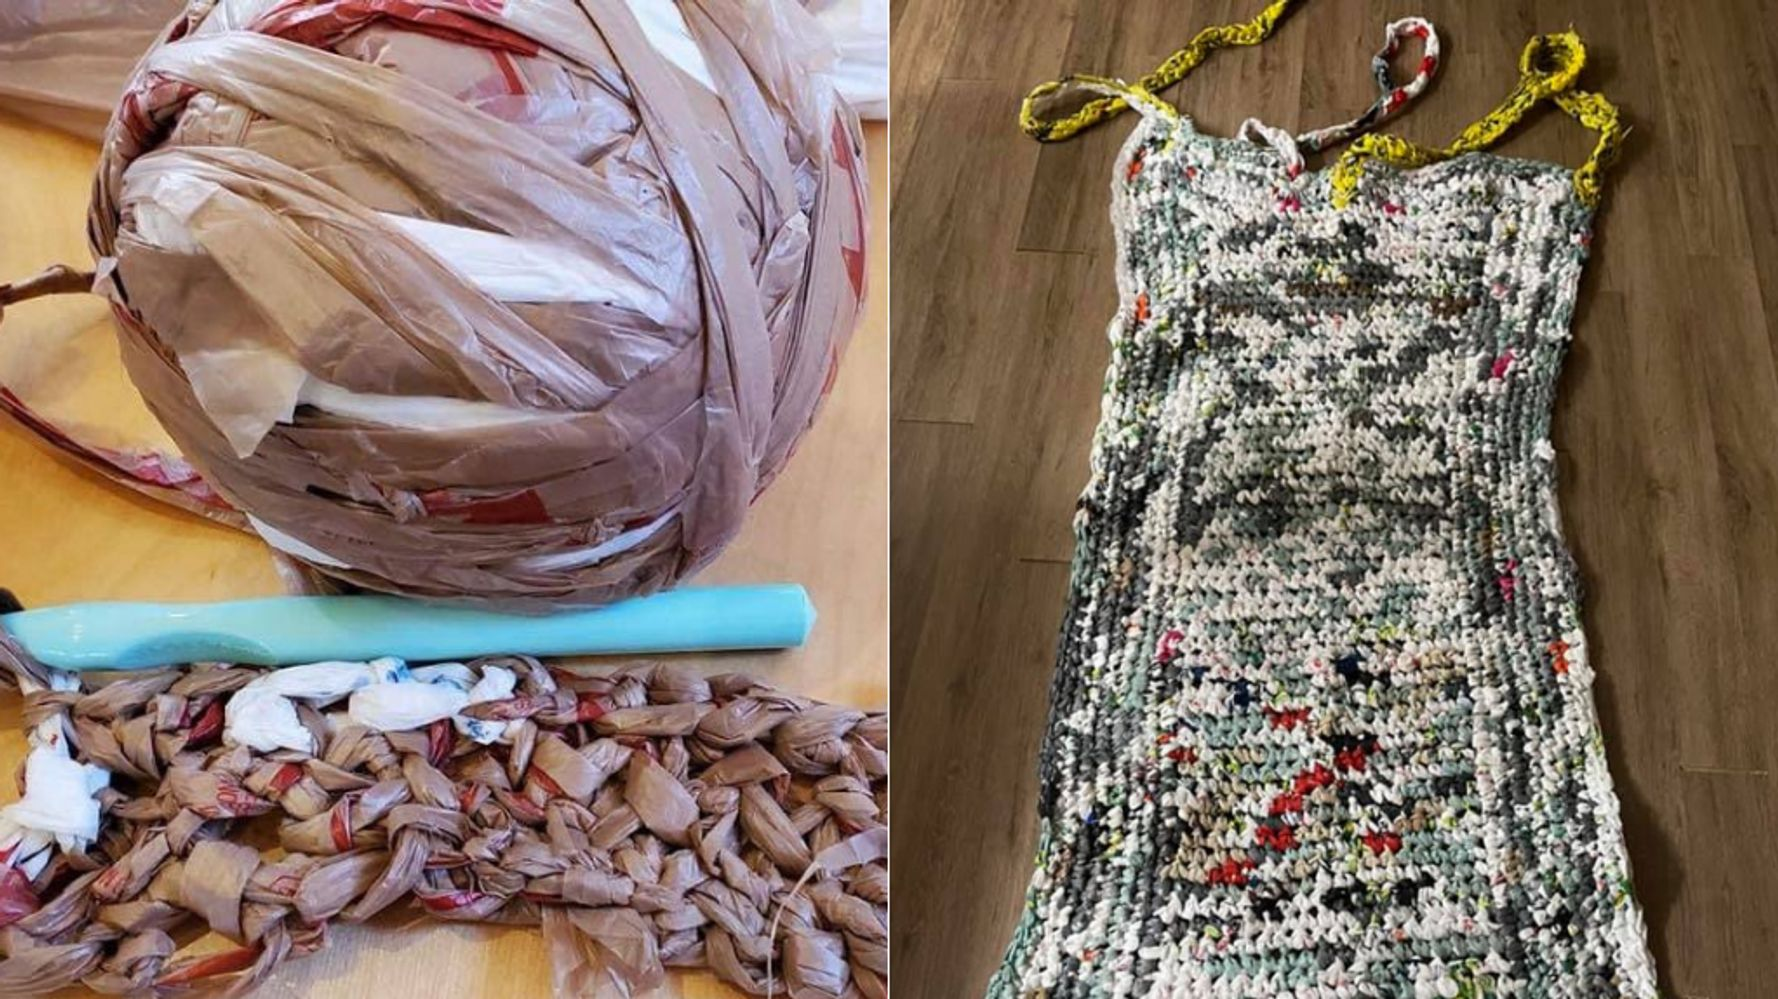 Canadians Are Turning Their Plastic Bags Into Sleeping Mats For The Homeless